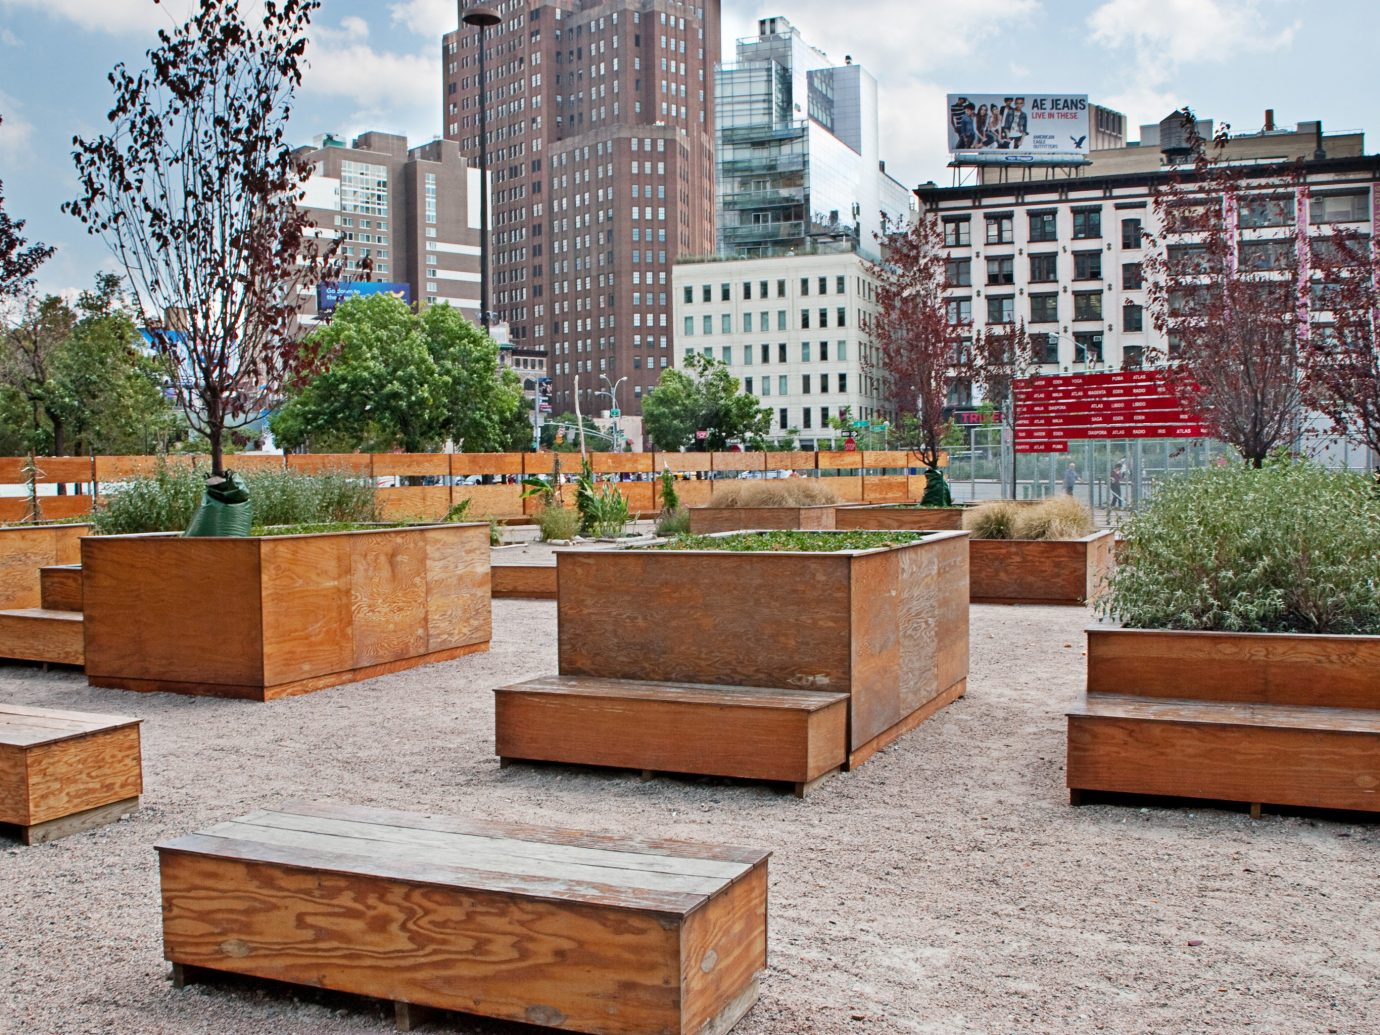 Hotels outdoor ground City public space wall wooden wood walkway brick furniture park backyard Courtyard Garden outdoor structure stone